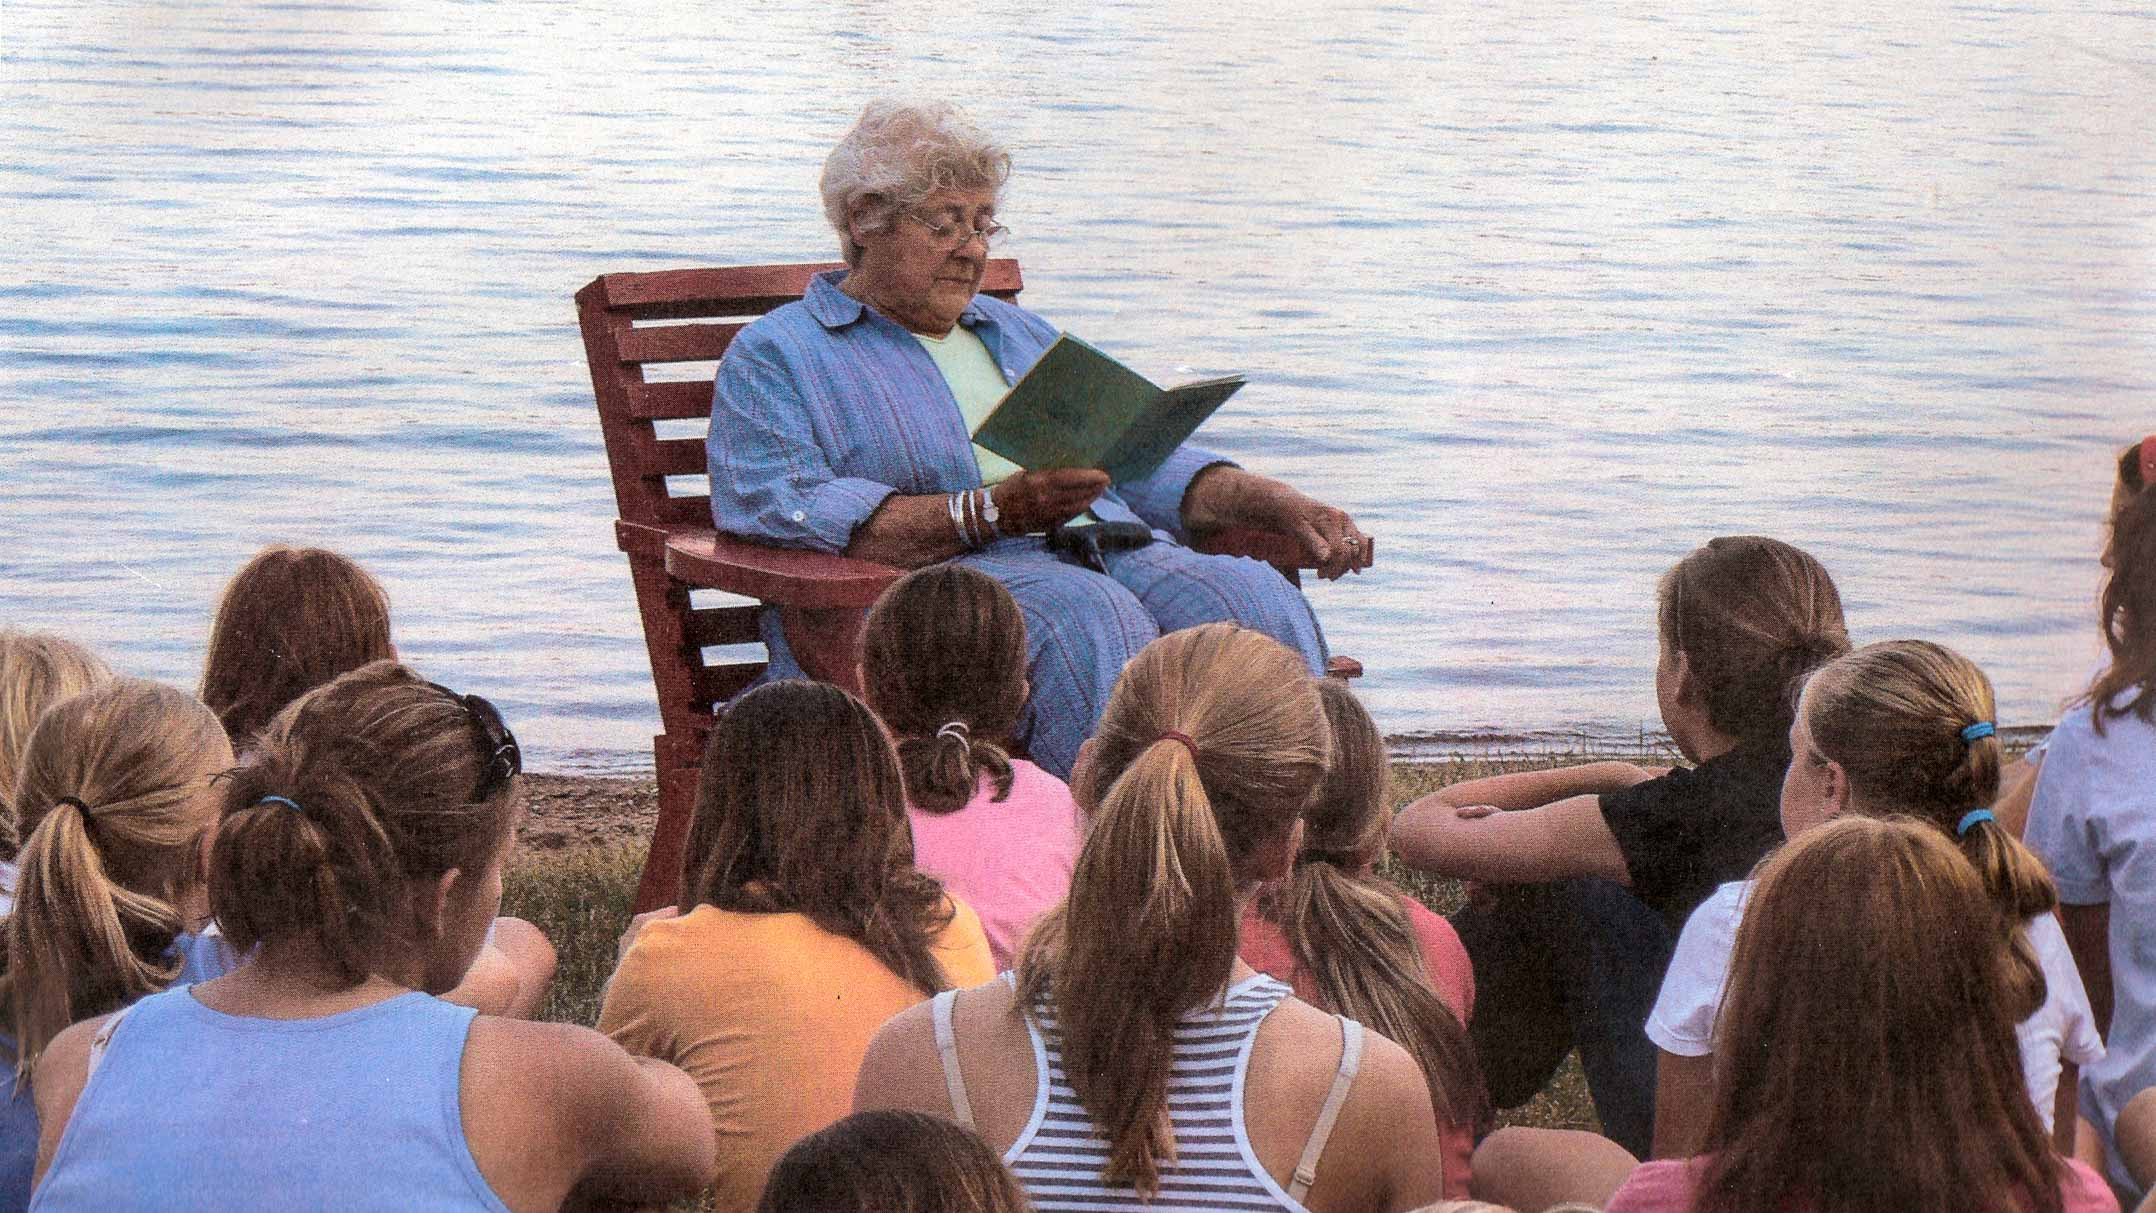 Sunny reads to campers by lakeshore